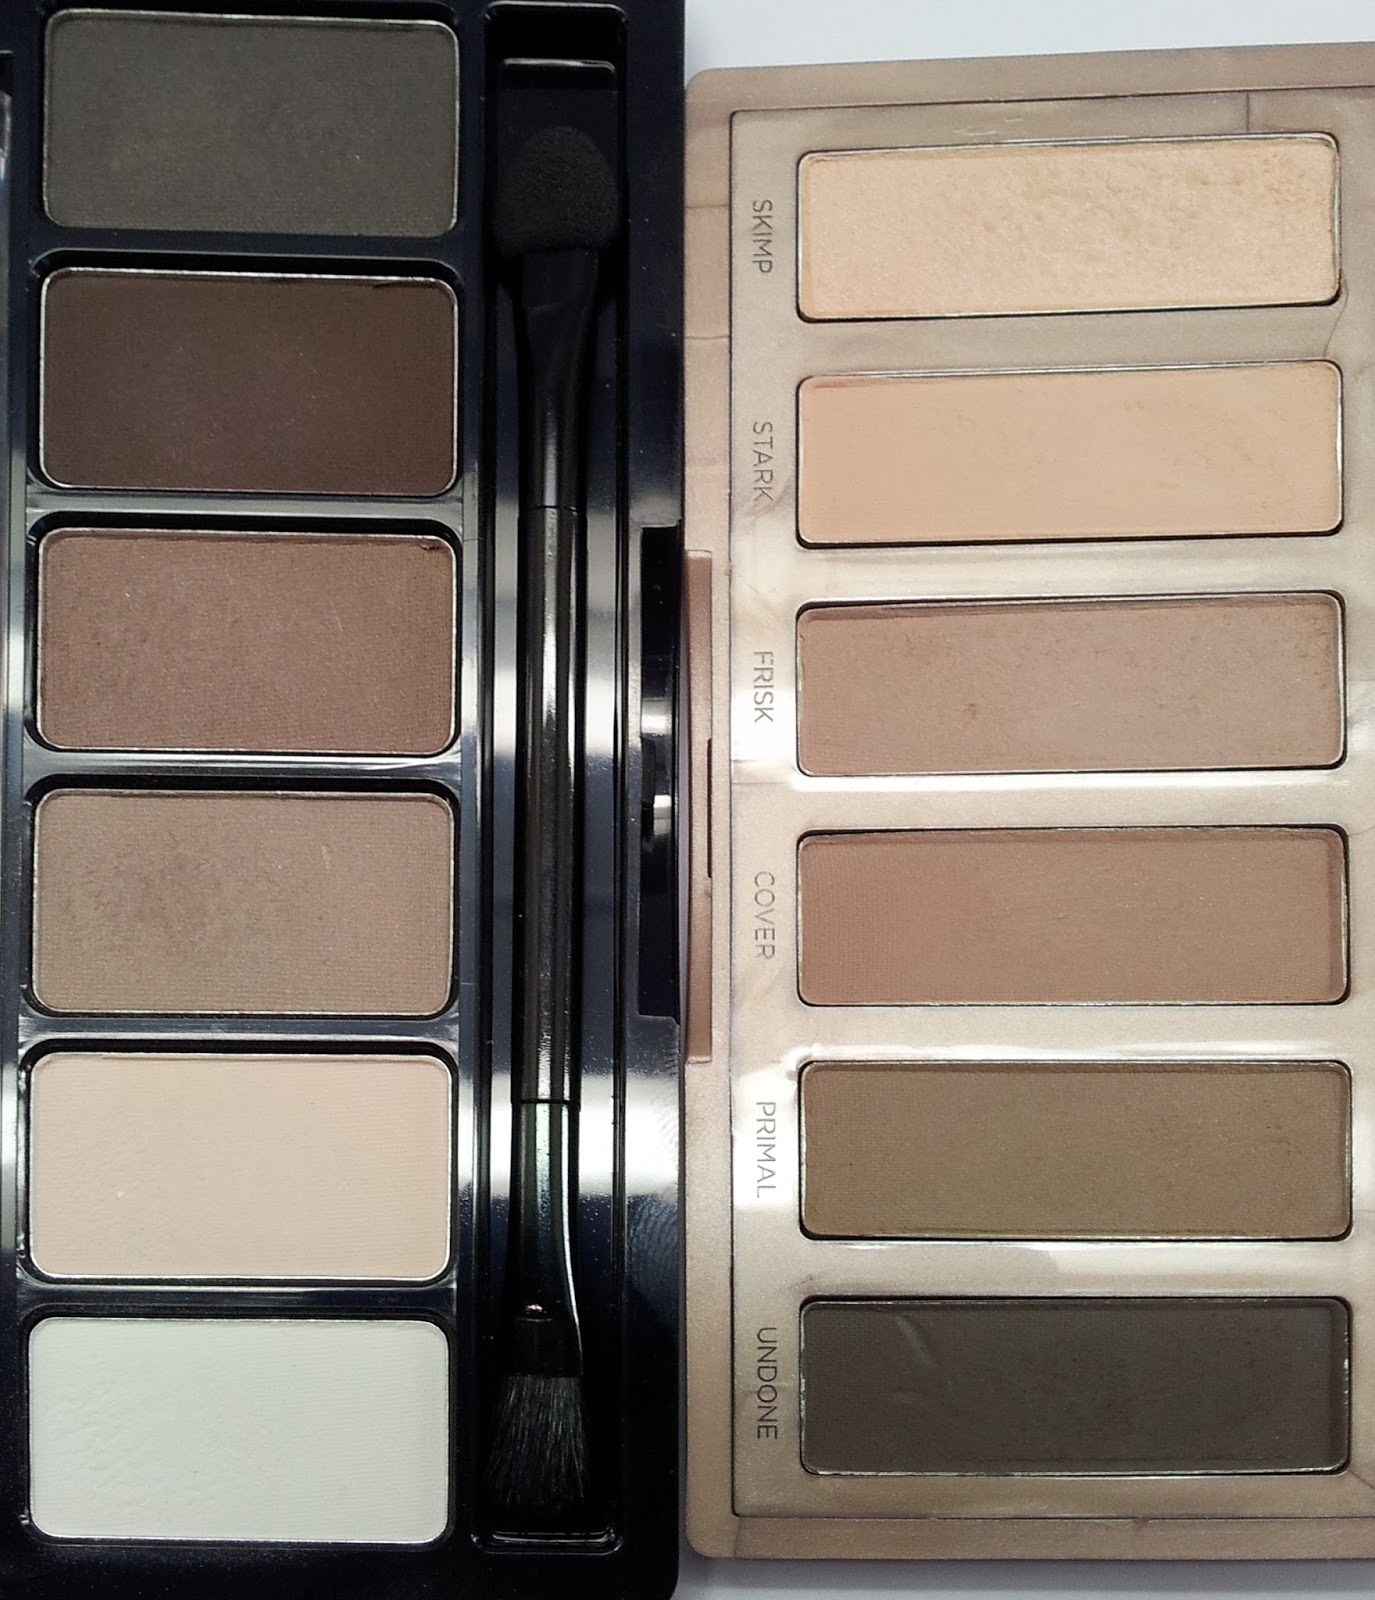 Vergleich Urban Decay Naked2 basics vs Catrice Absolute matt